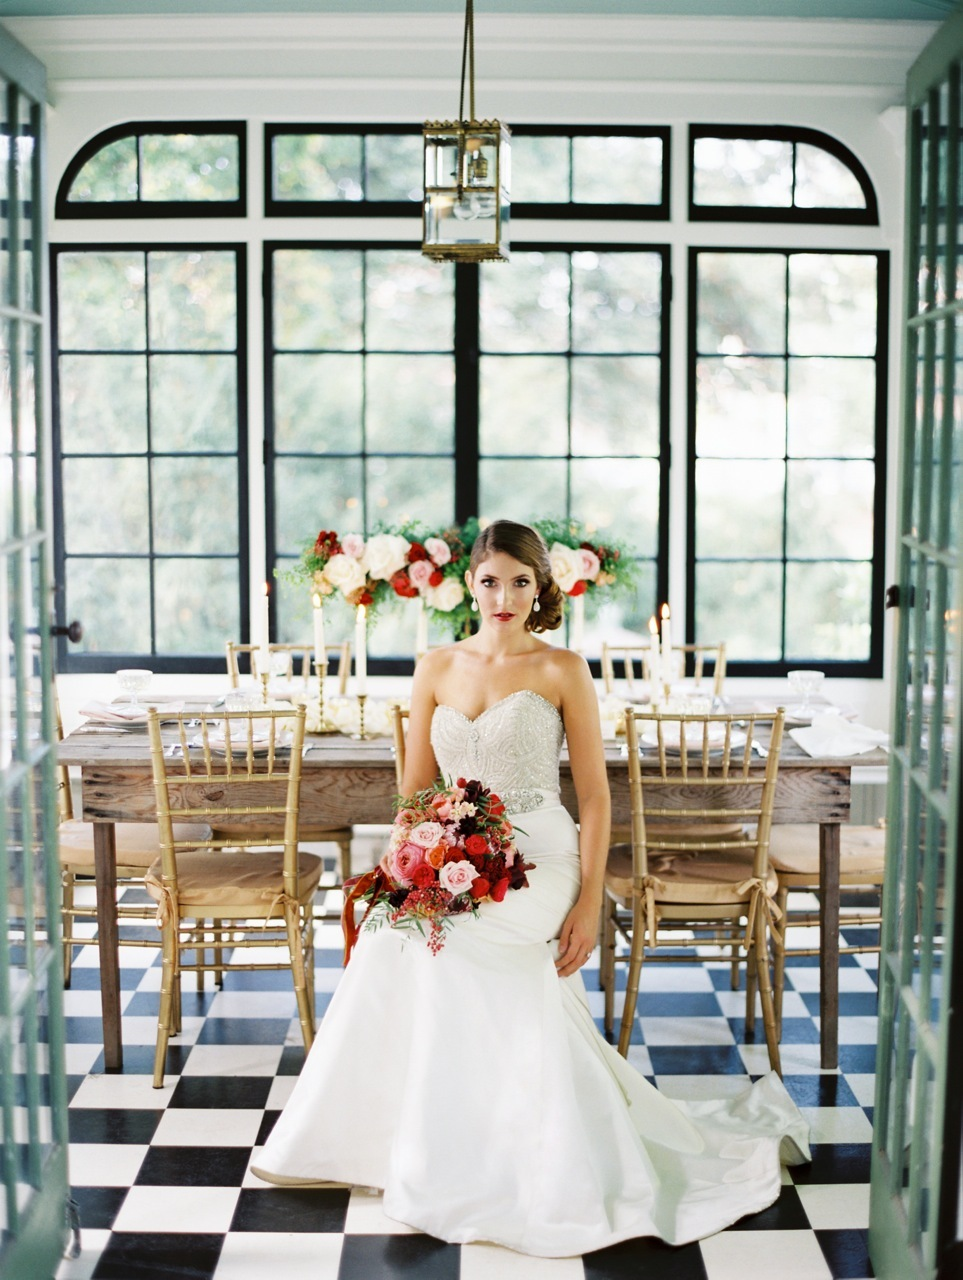 Reception, Flowers & Decor, red, Portrait, Bridal, Floor, Crimson, Checkered, Love poems styled wedding